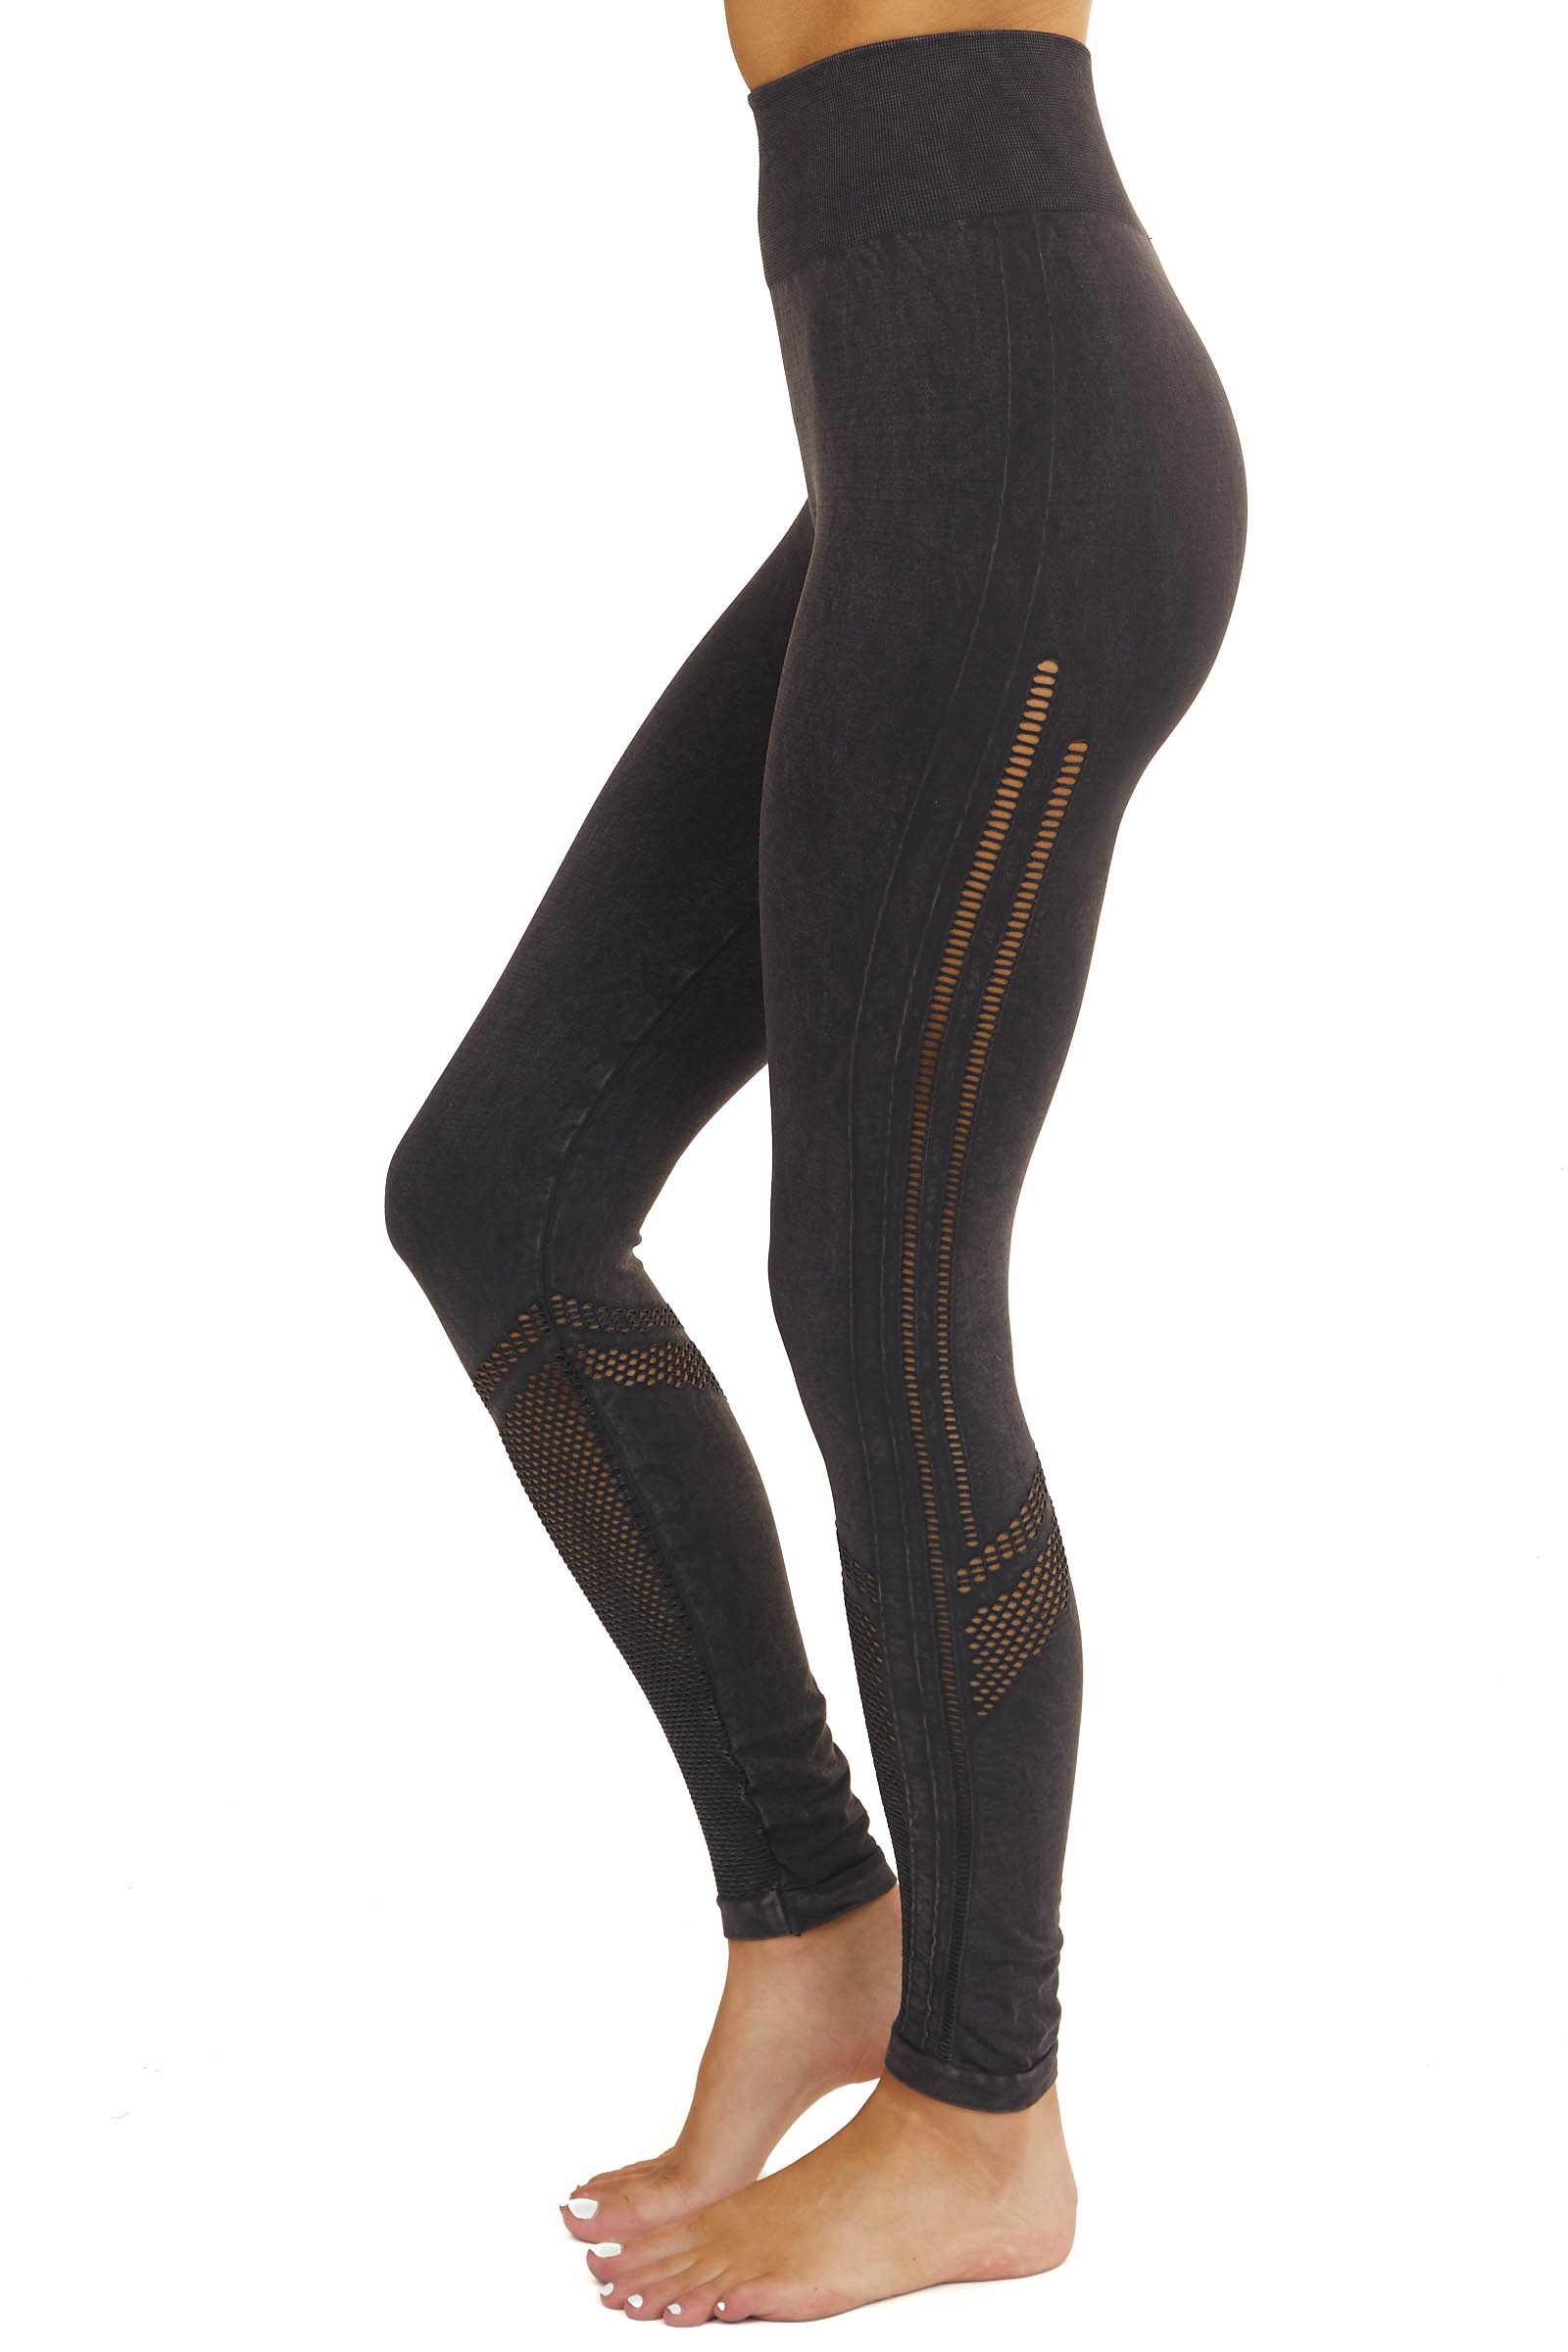 Faded Black Stretchy Leggings with Mesh Details